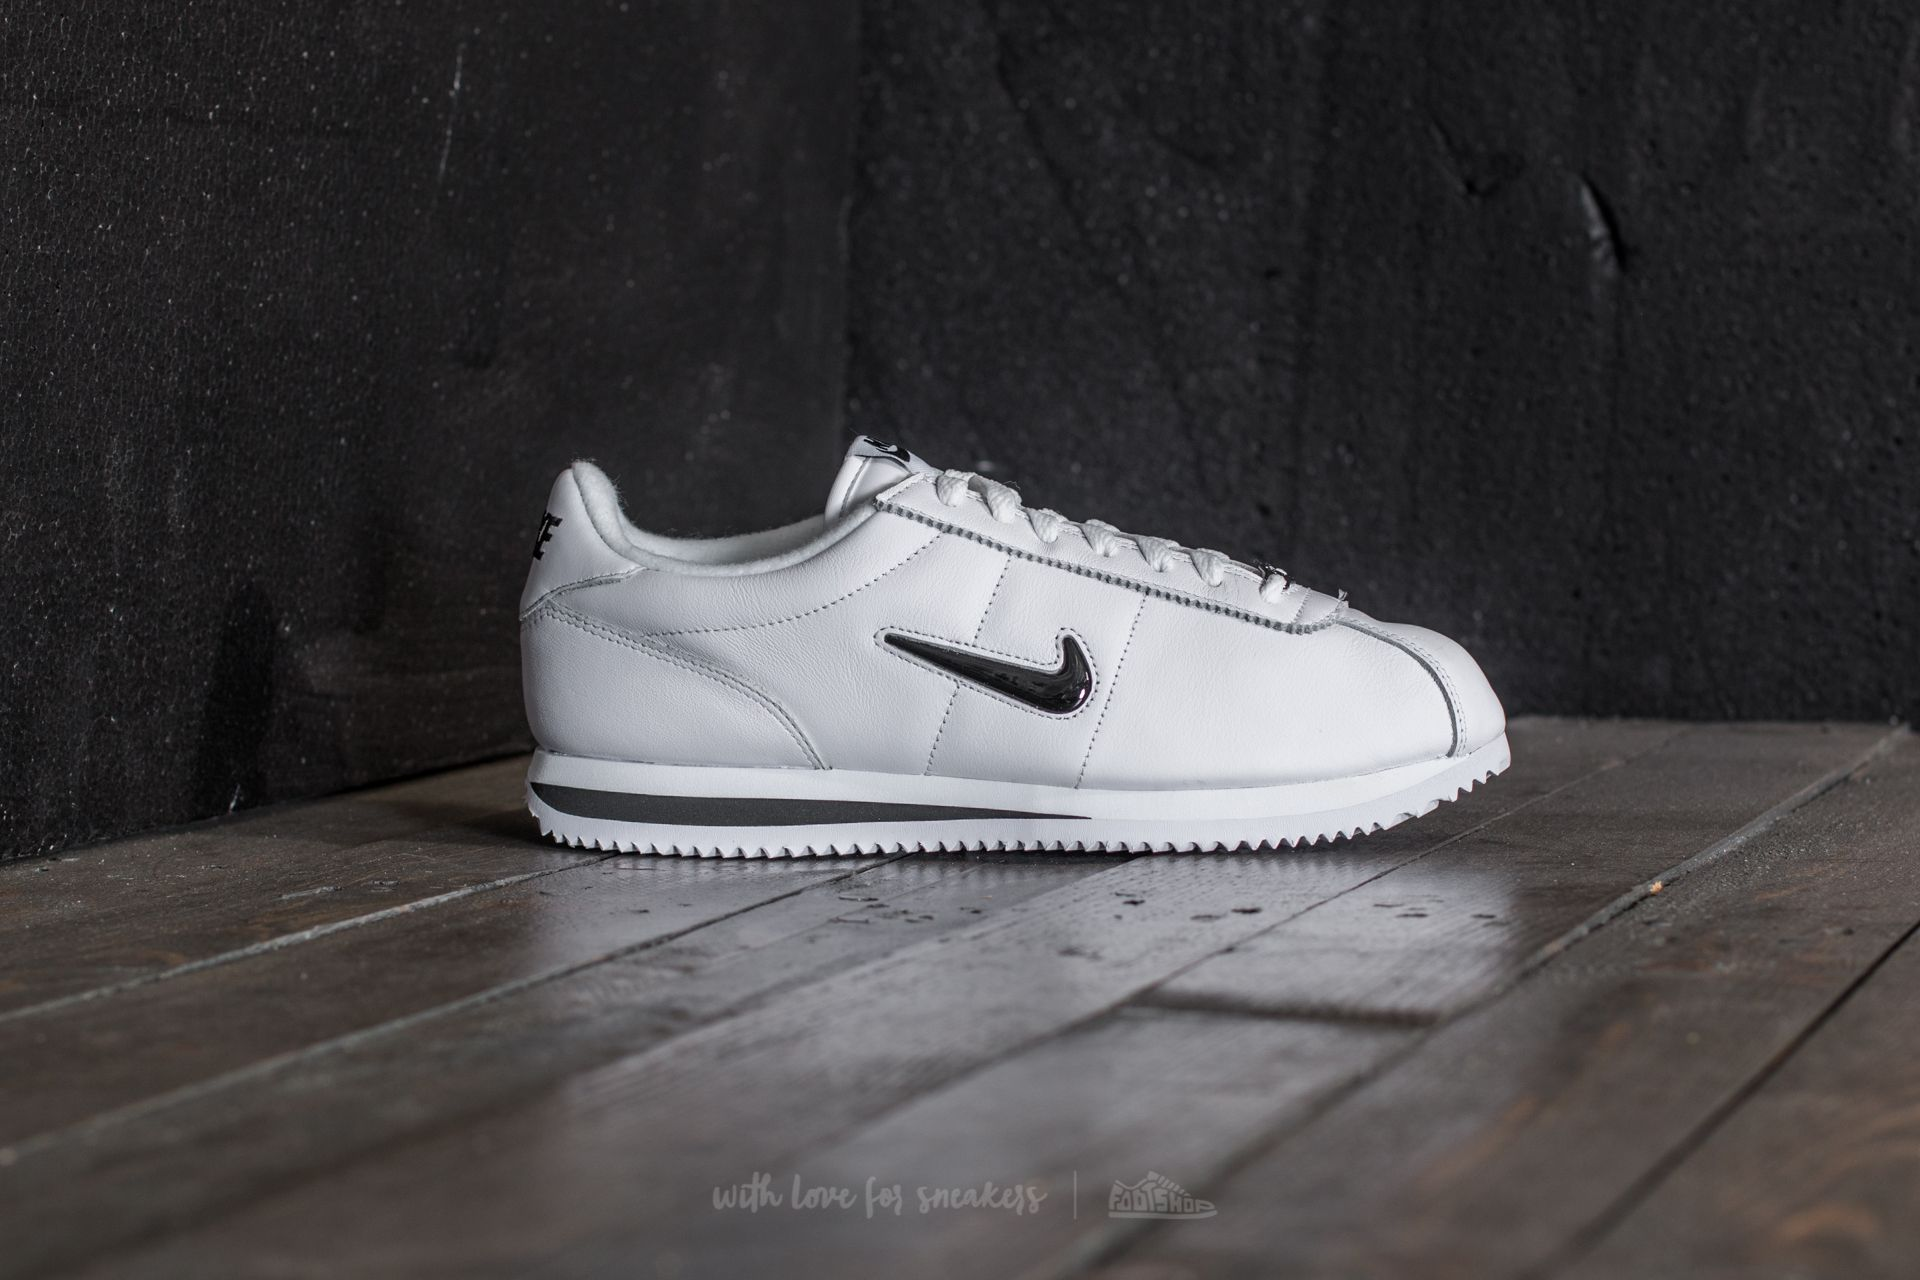 Nike Cortez Basic Jewel QS TZ White Black | Footshop